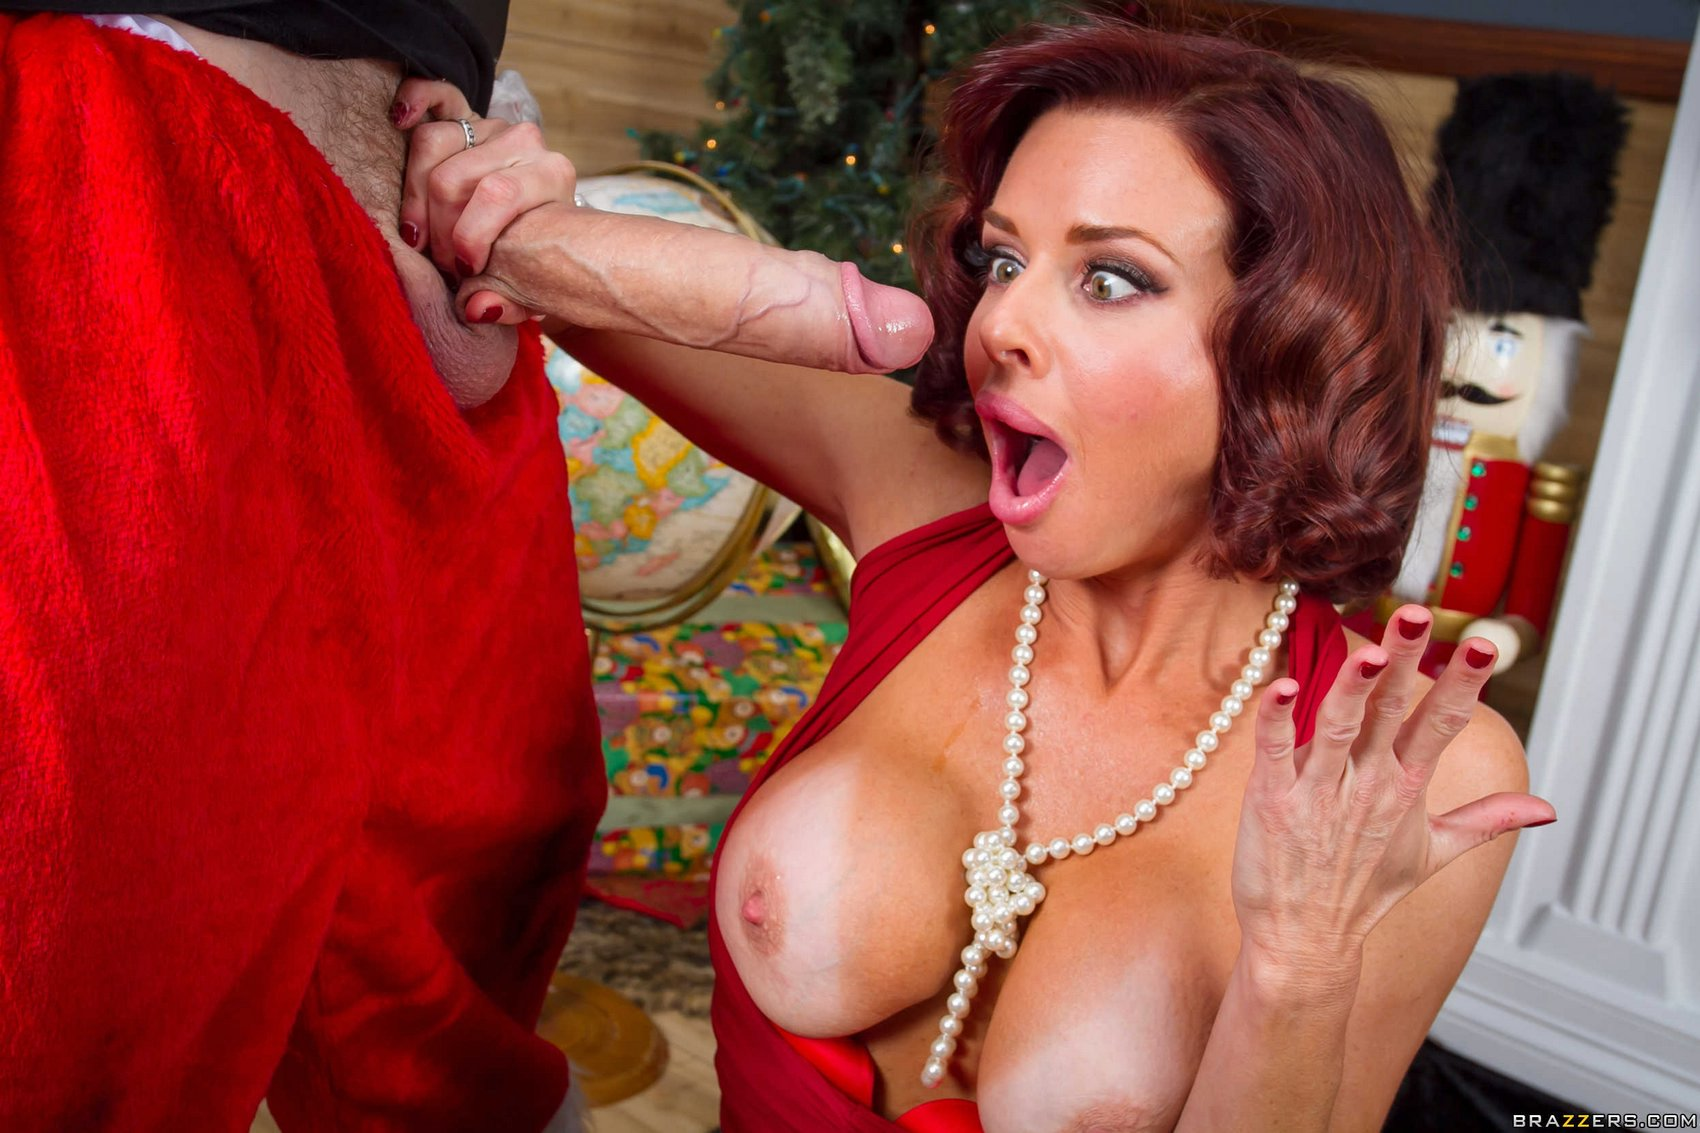 Milf maggie green teaches chloe temple a few lessons making her shocked on gotporn